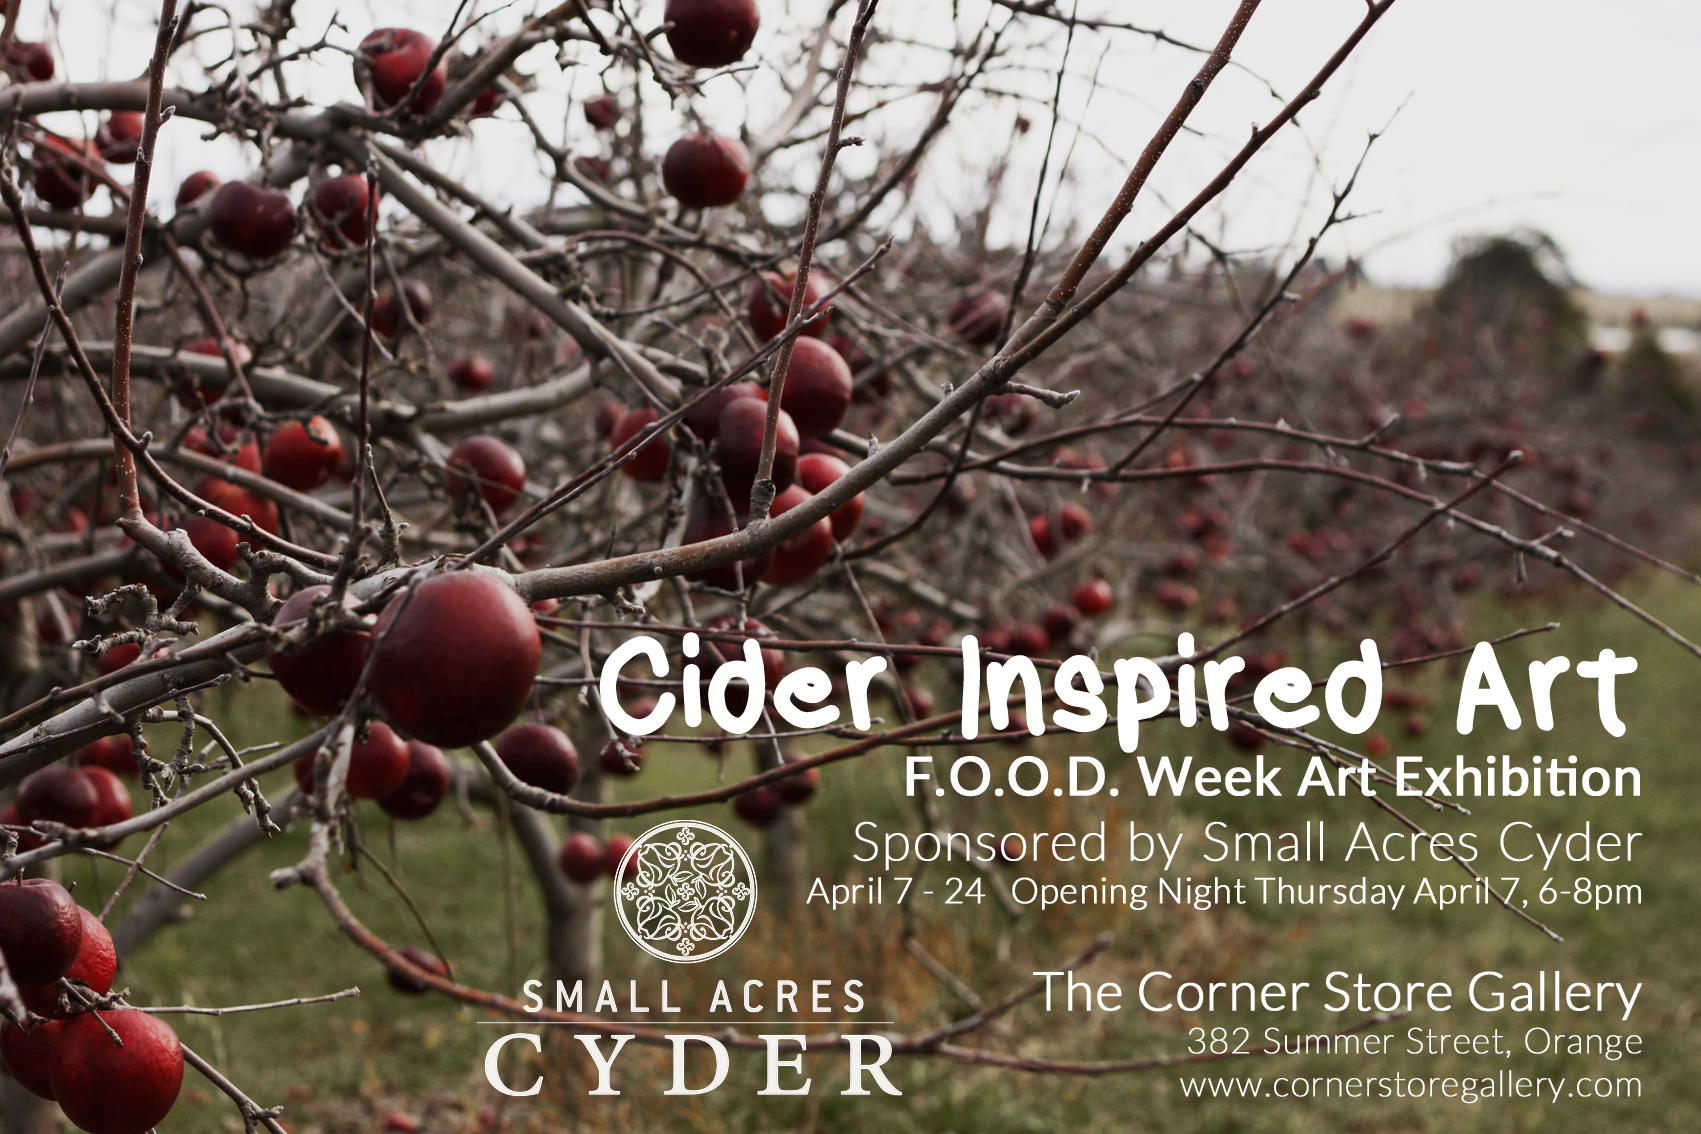 The Corner Store Gallery, Small Acres Cyder - FOOD Week Exhibition 2016